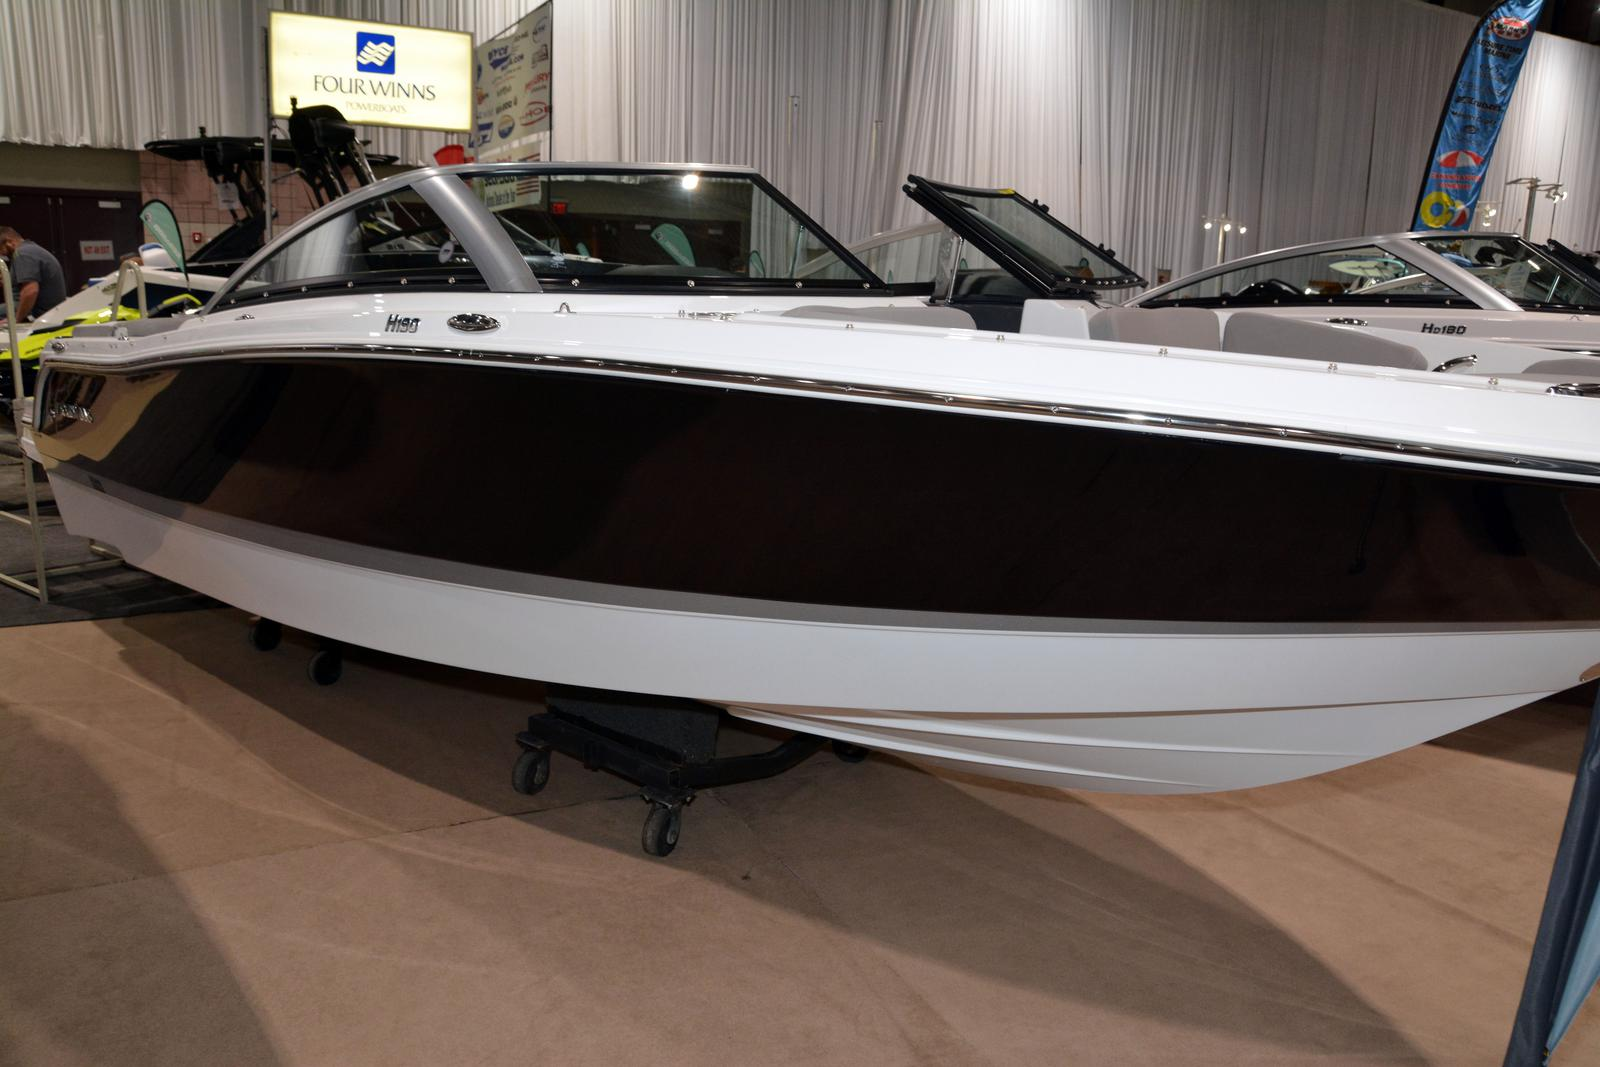 2020 Four Winns boat for sale, model of the boat is Horizon 190 & Image # 1 of 21